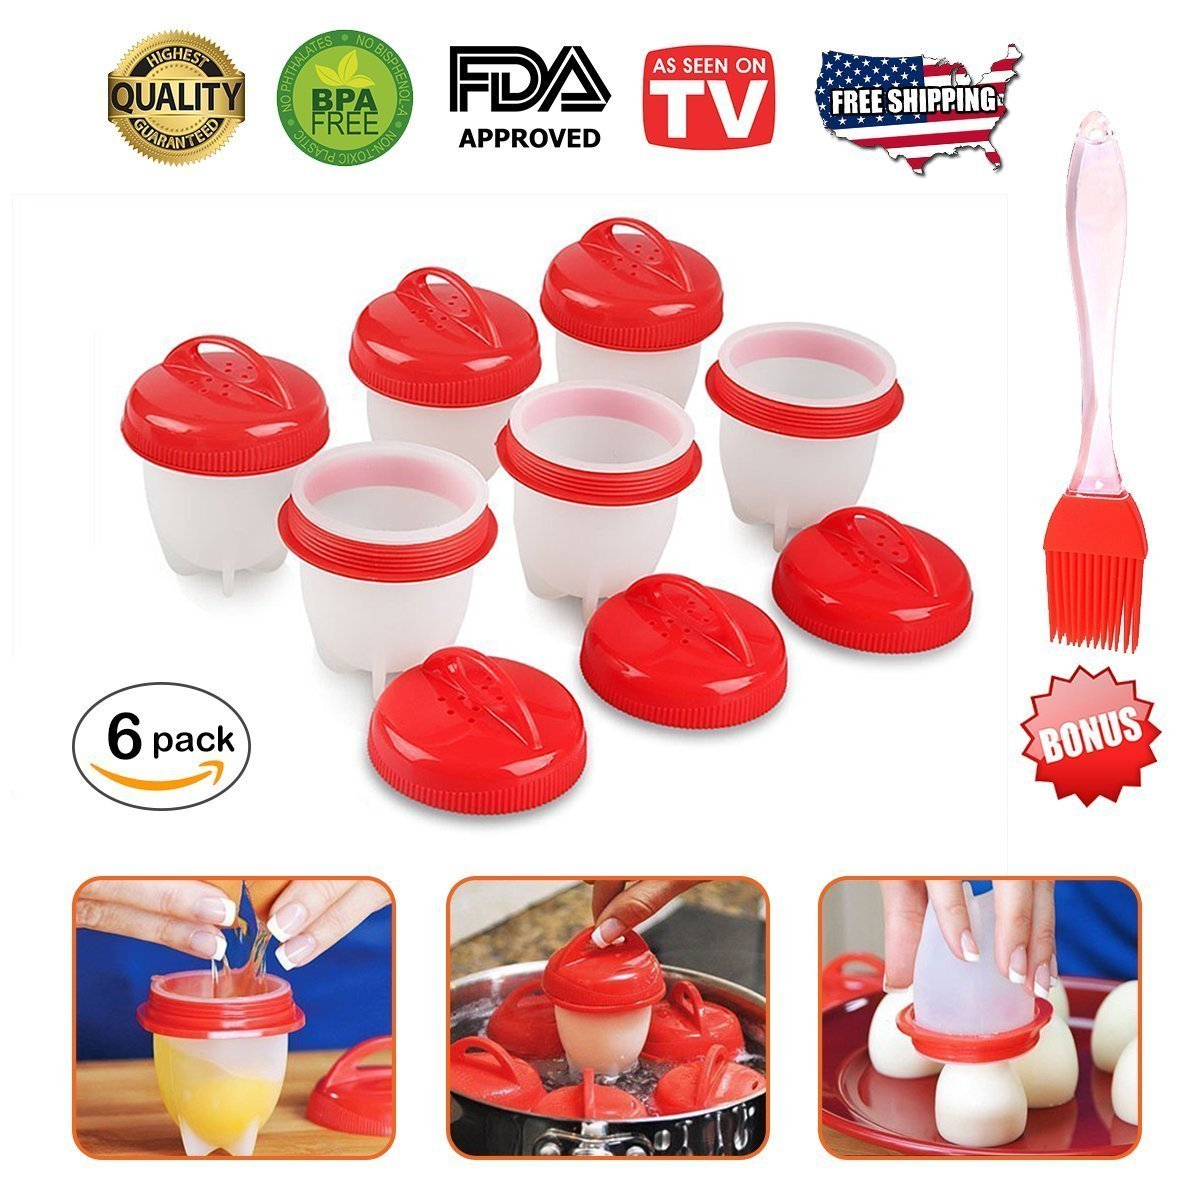 Egg Cookers by MUNCHIEZ - Hard Boiled Eggs without the Shell, Hard & Soft Maker Egg Poacher AS SEEN ON TV,6 Pack + BONUS ITEM!!!